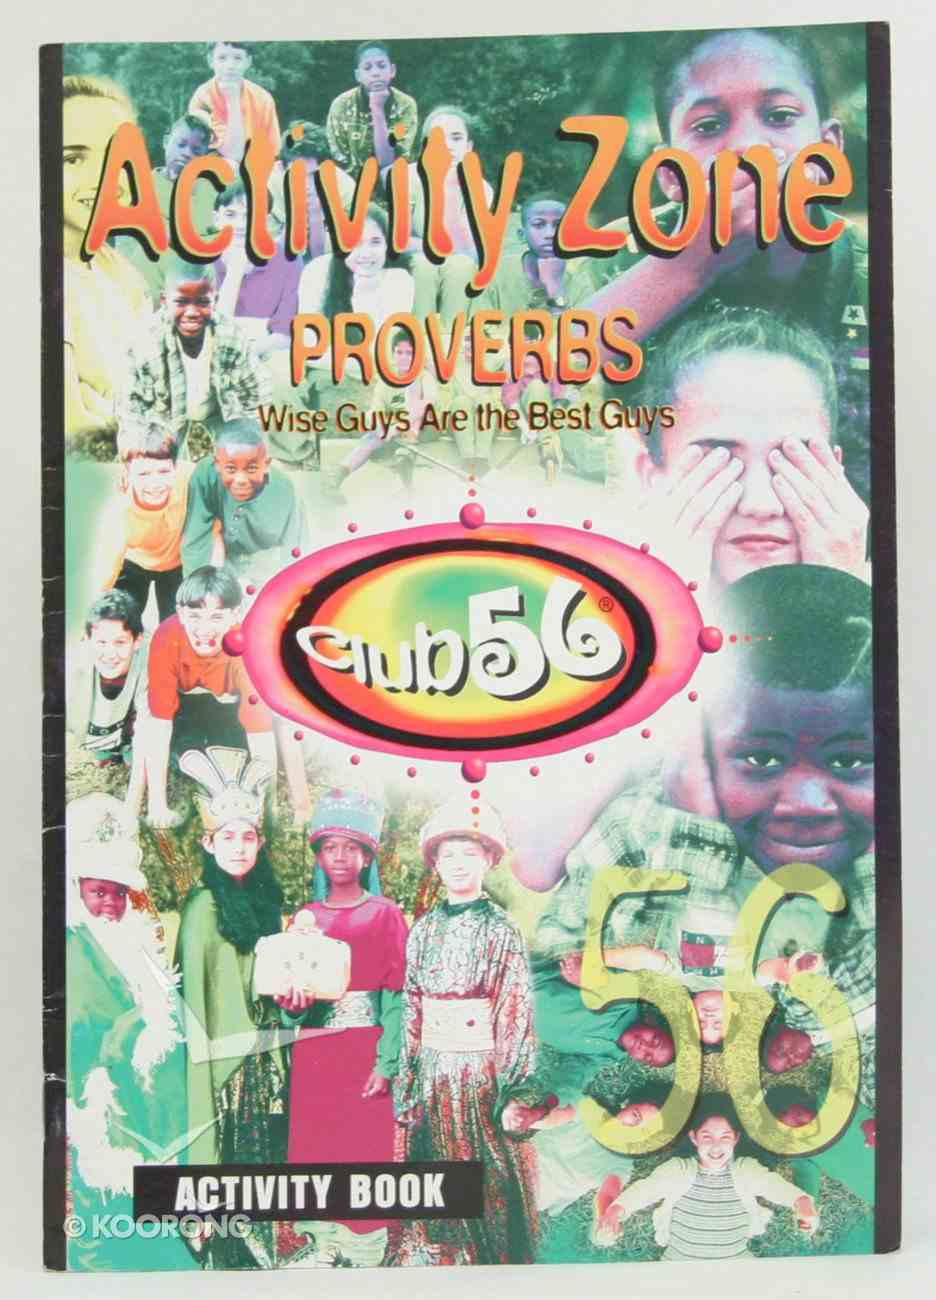 Club 56 Proverbs Activity Book Paperback